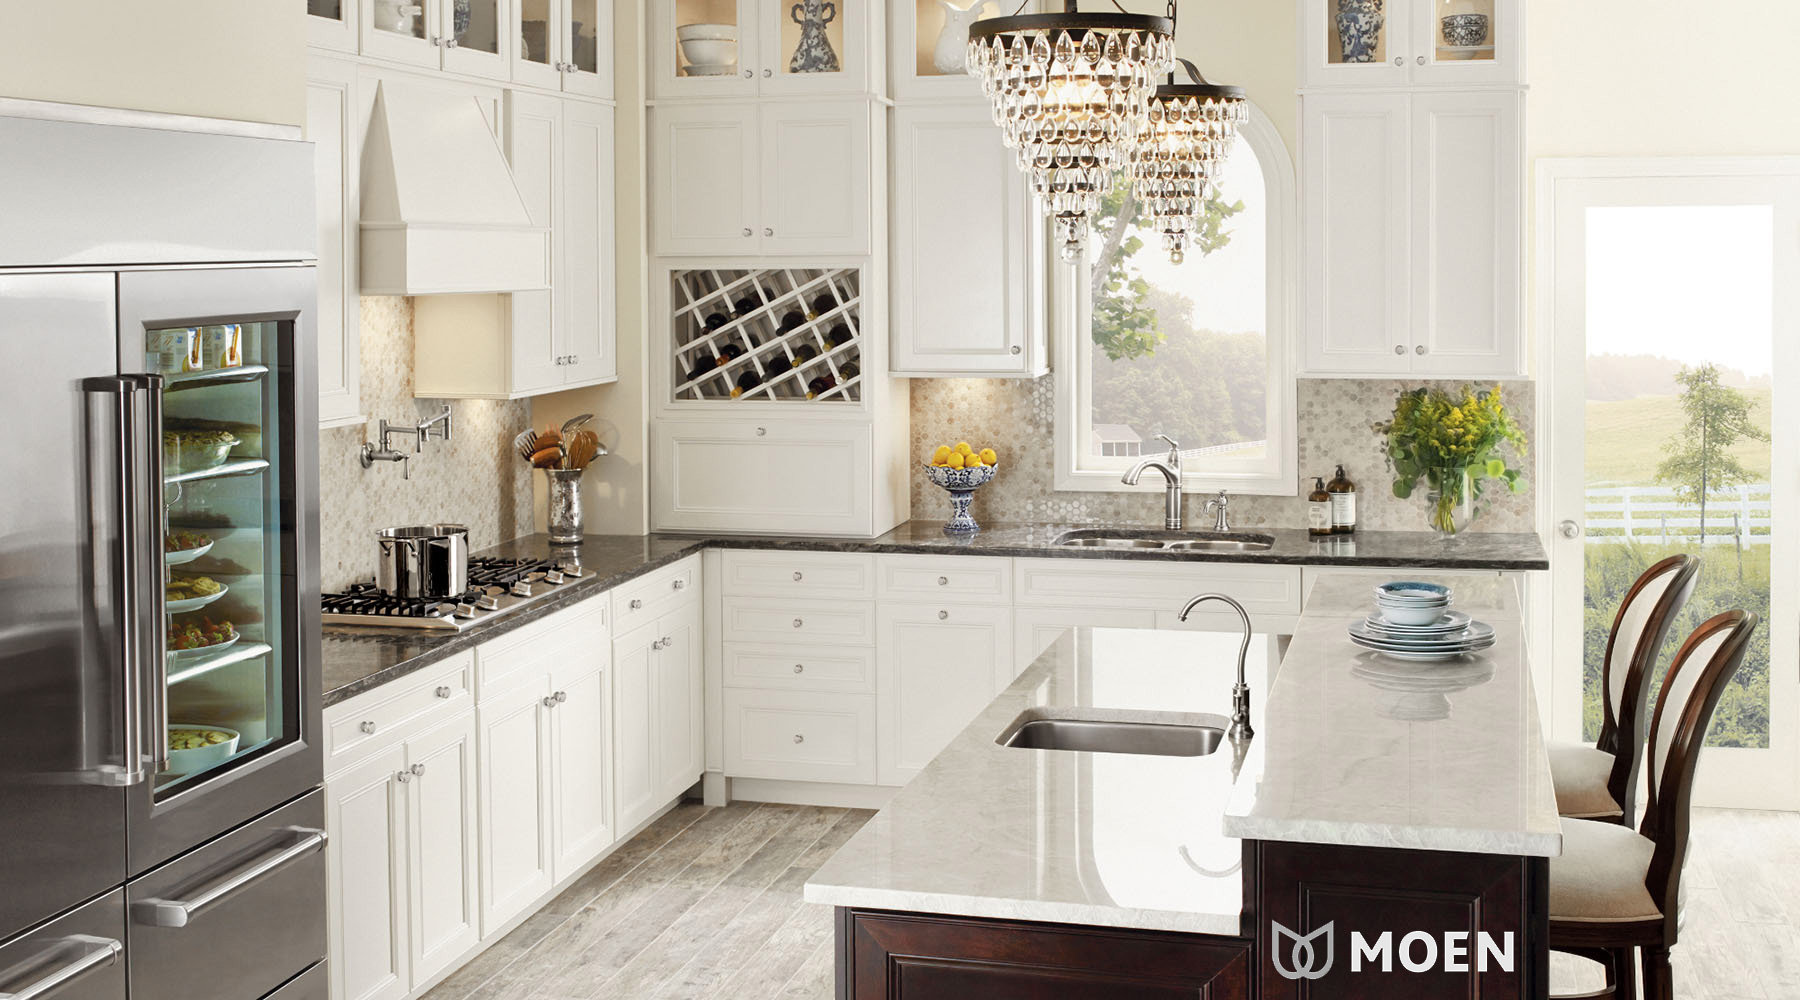 moen kitchen fisher faucets home facets showrooms offer a variety of luxury products including an expansive selection plumbing hardware and accessories that combine beautiful form